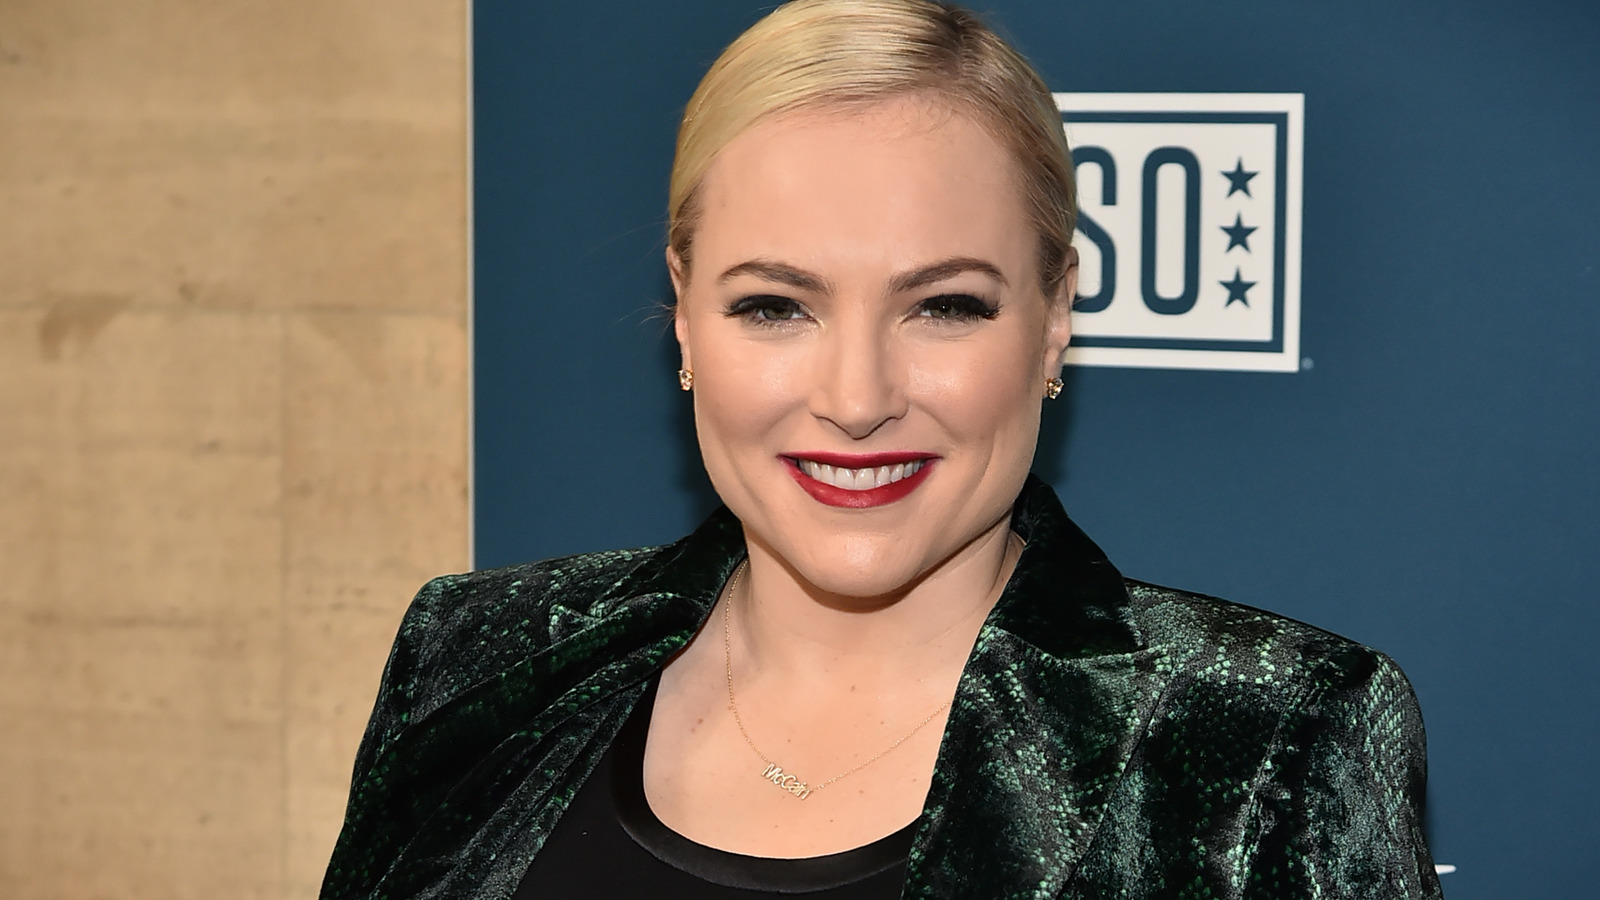 Why Meghan McCain's Return To The View Caused Quite The Stir